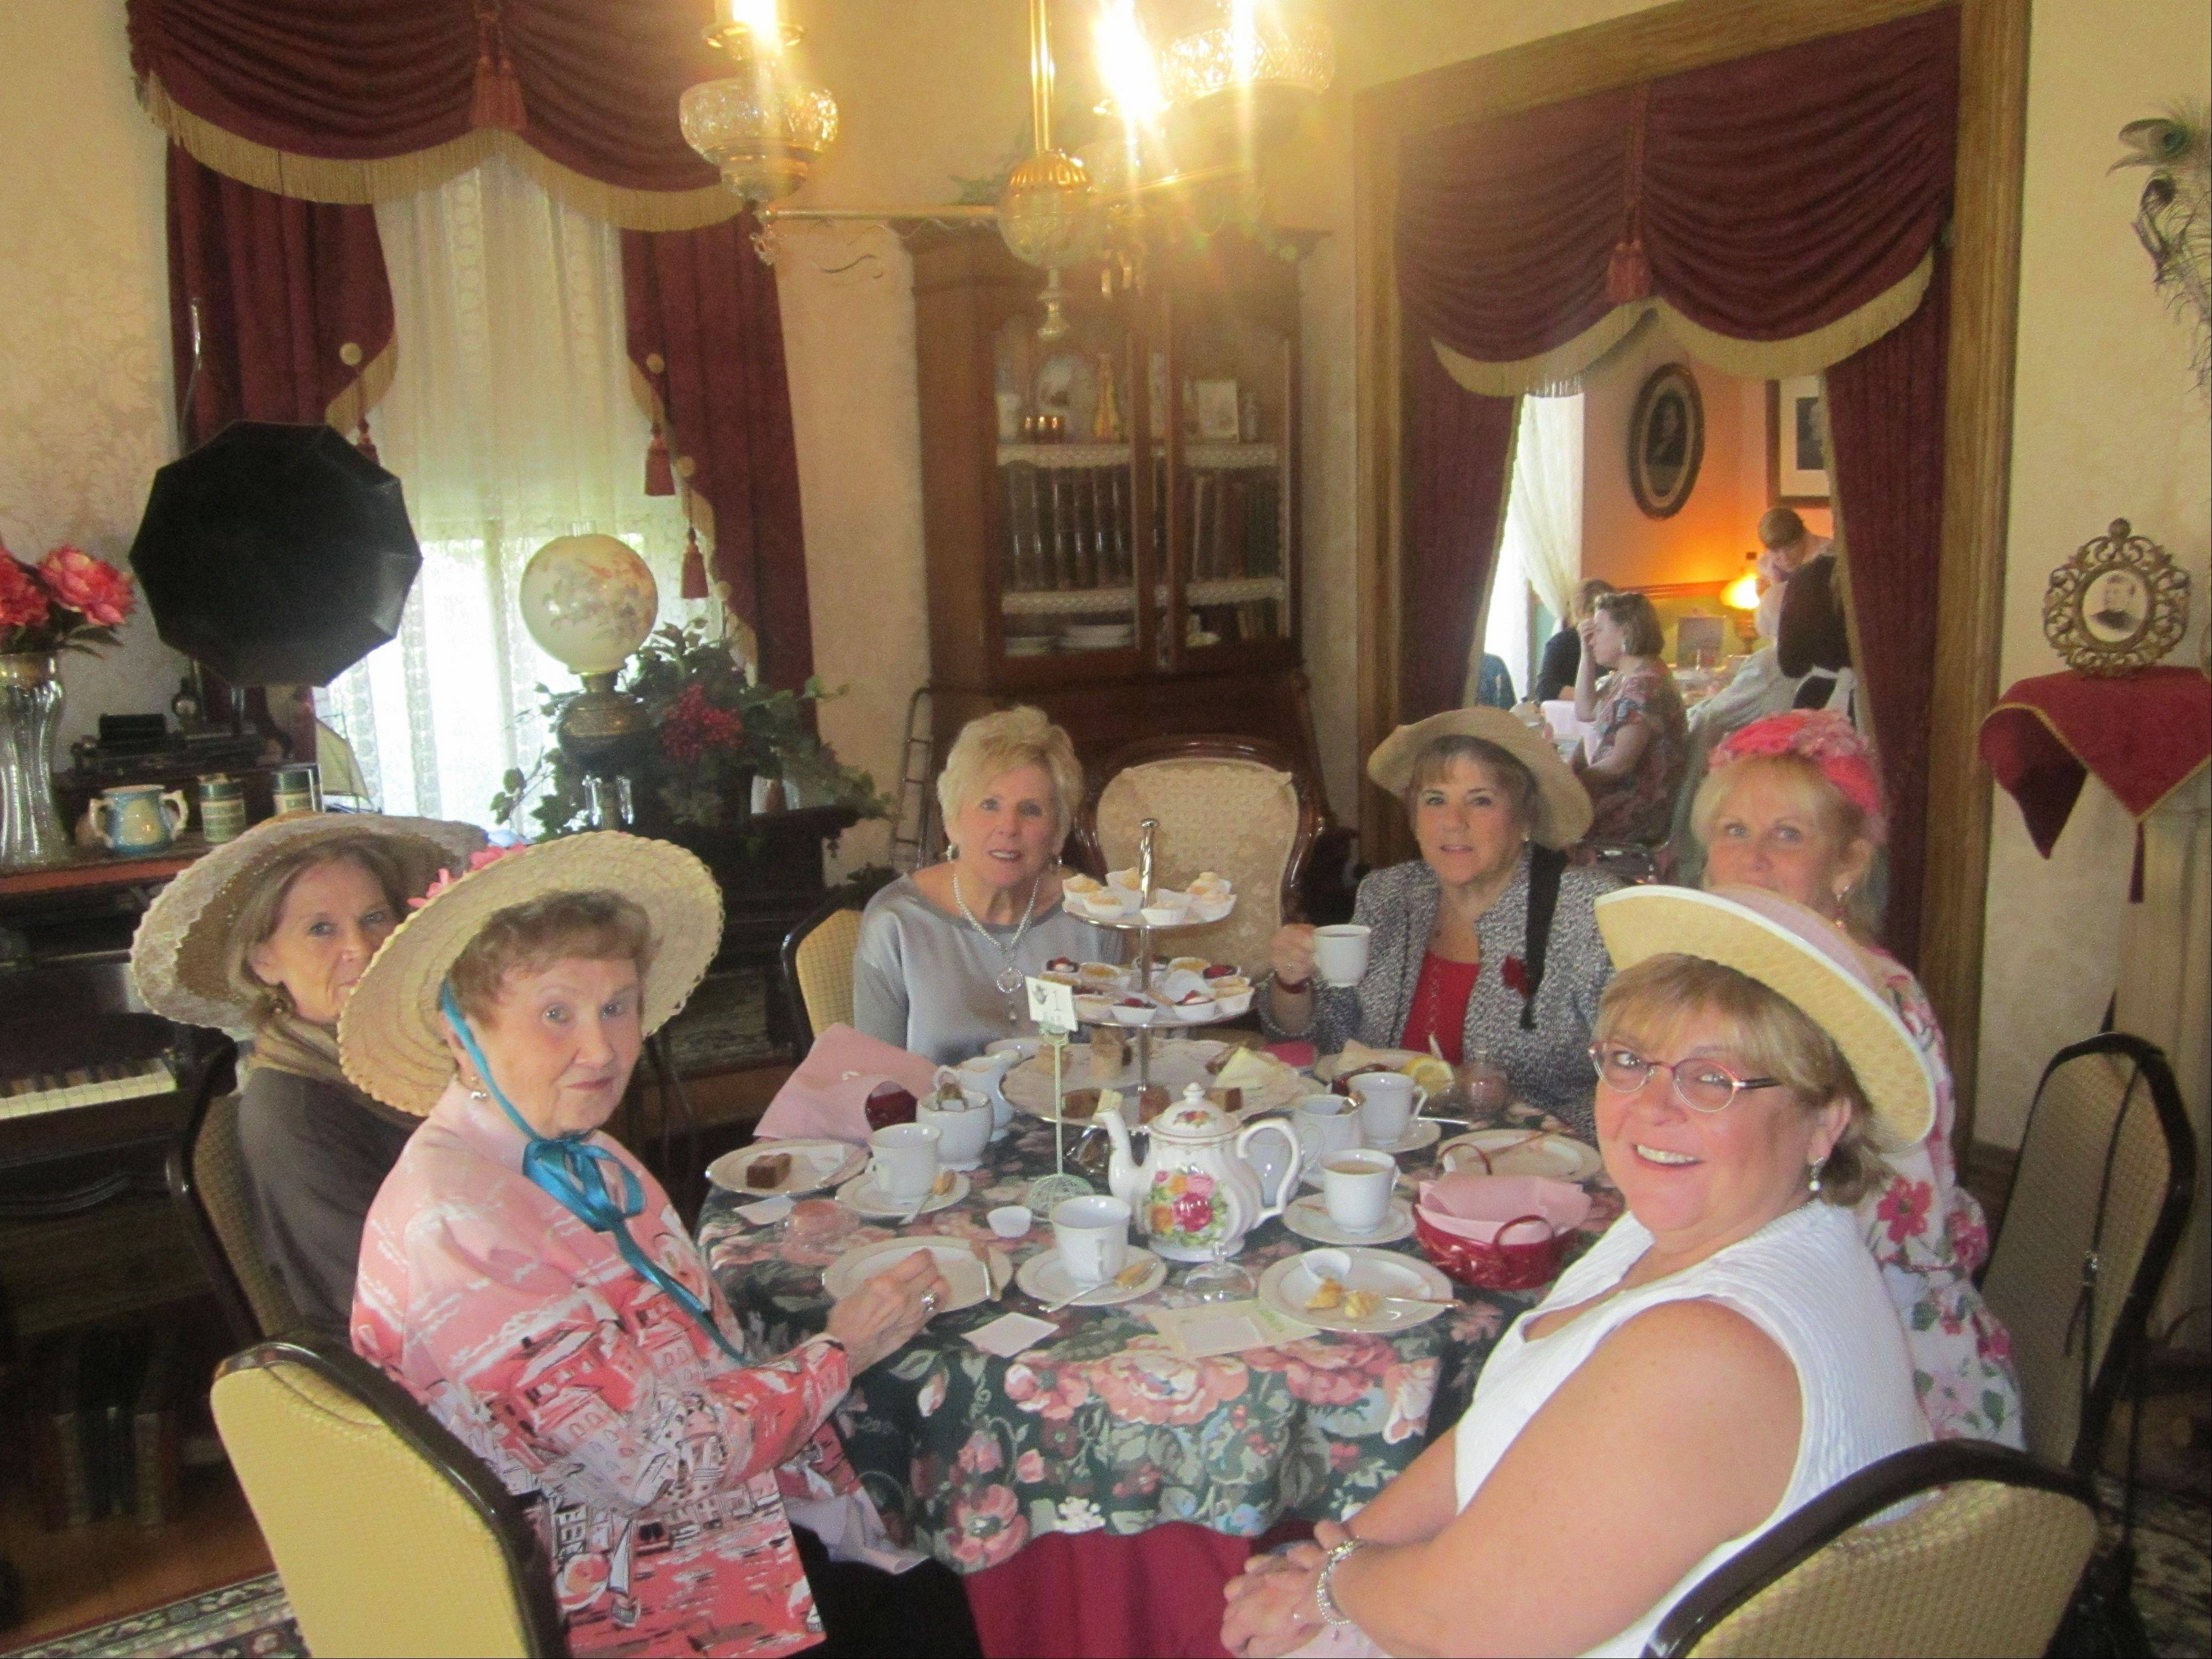 The Palatine Historical Society will host its 19th annual Victorian Teas at Clayson House, in Palatine, April 6, 7, 13 and 14. Tickets are $25, call (847) 991-6460 for reservations.